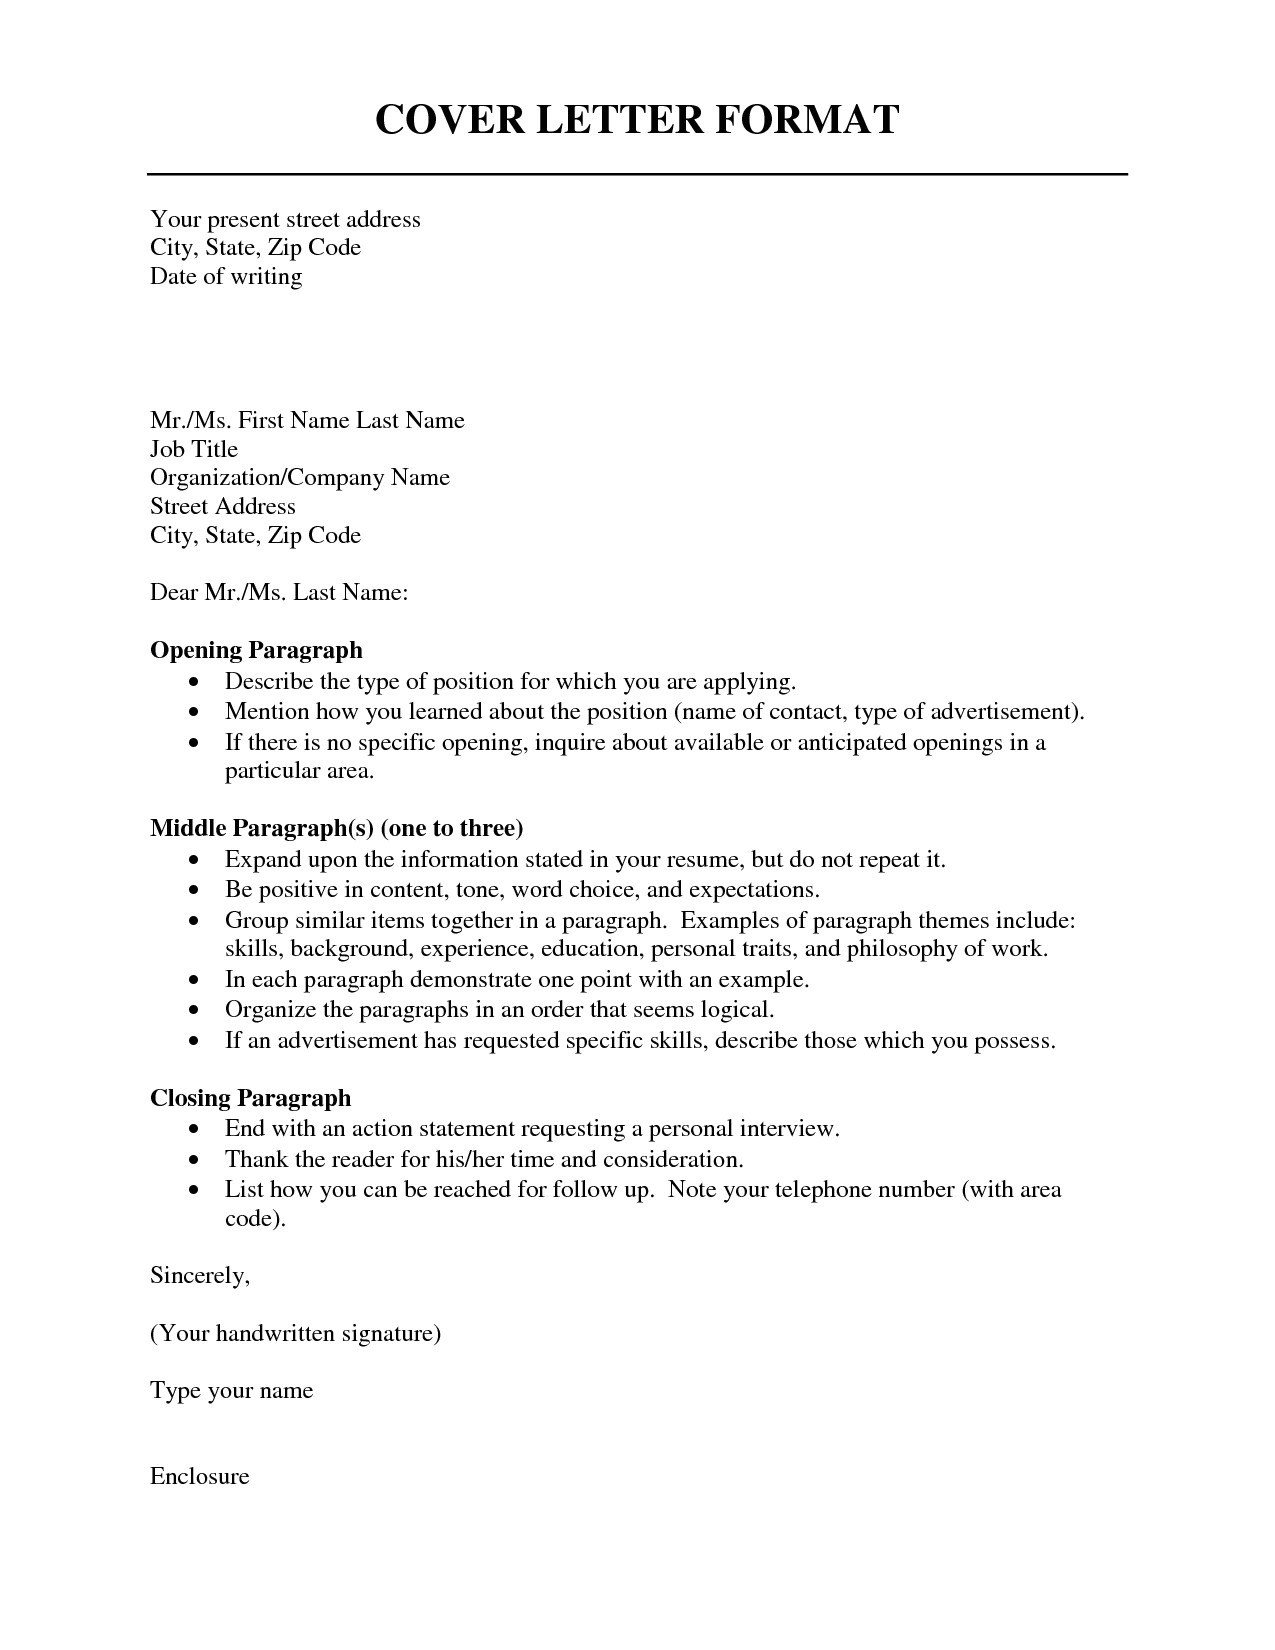 What is the format for A Cover Letter Correct format for Cover Letter the Letter Sample